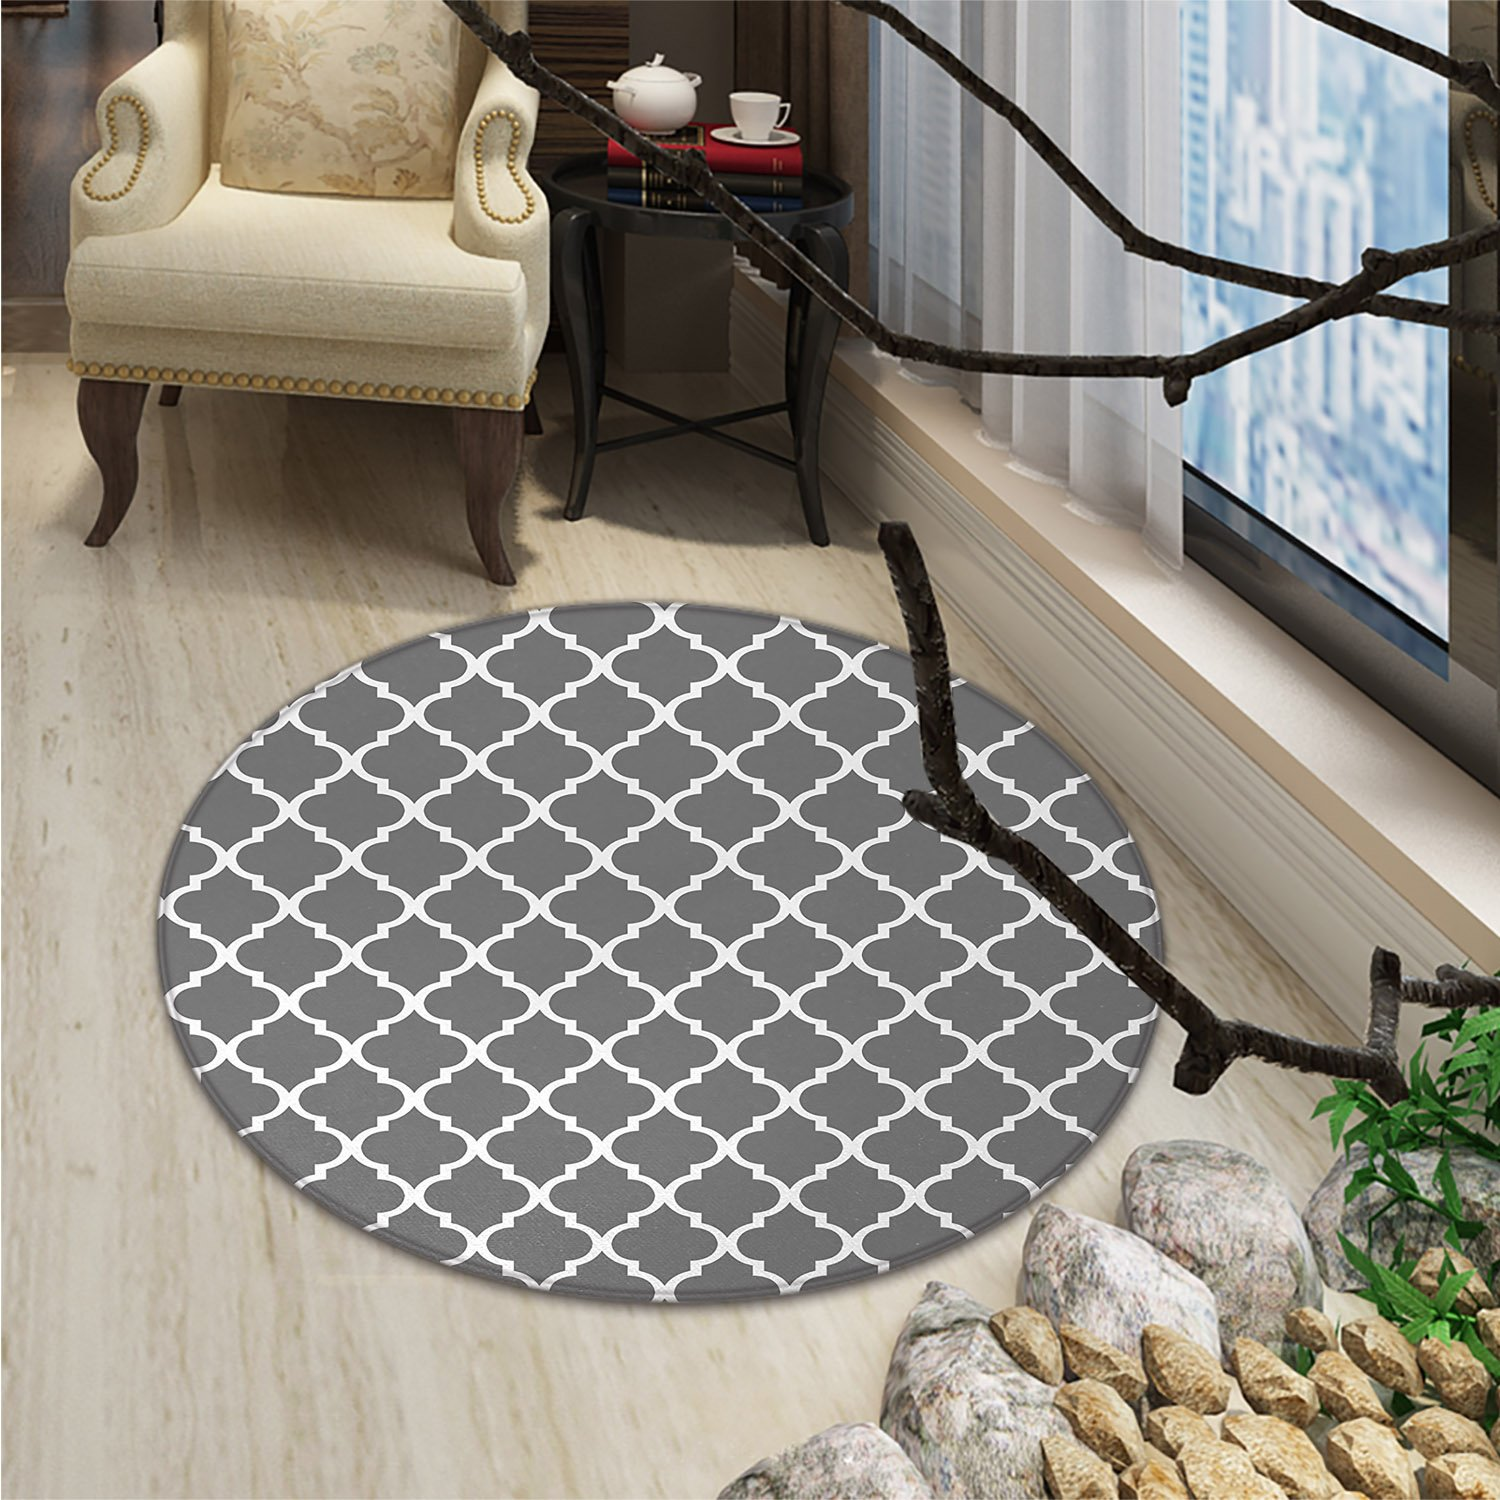 Grey Round Area Rug Quatrefoil Pattern Barbed Design Geometric Leaf Print Lattice Country Life InspiredOriental Floor and Carpets Gray White